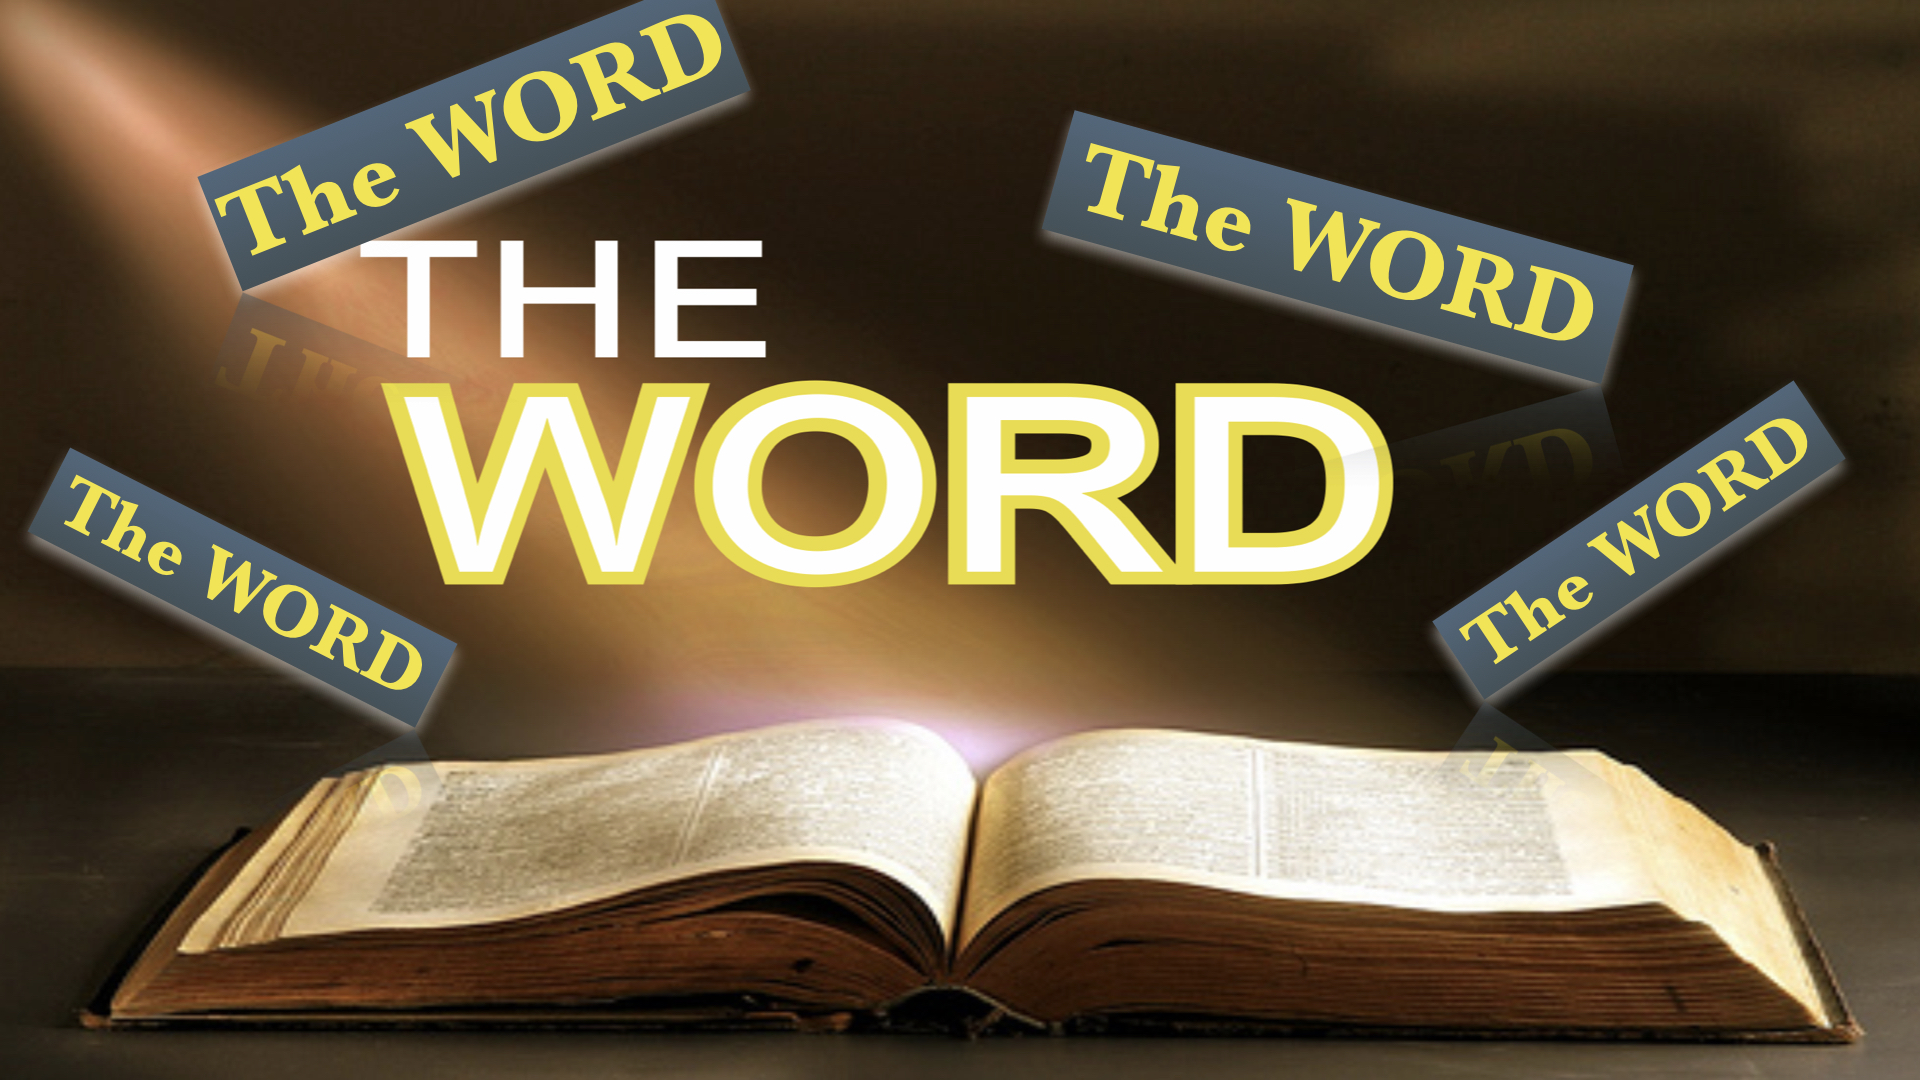 The Word 6172018 83659 AM